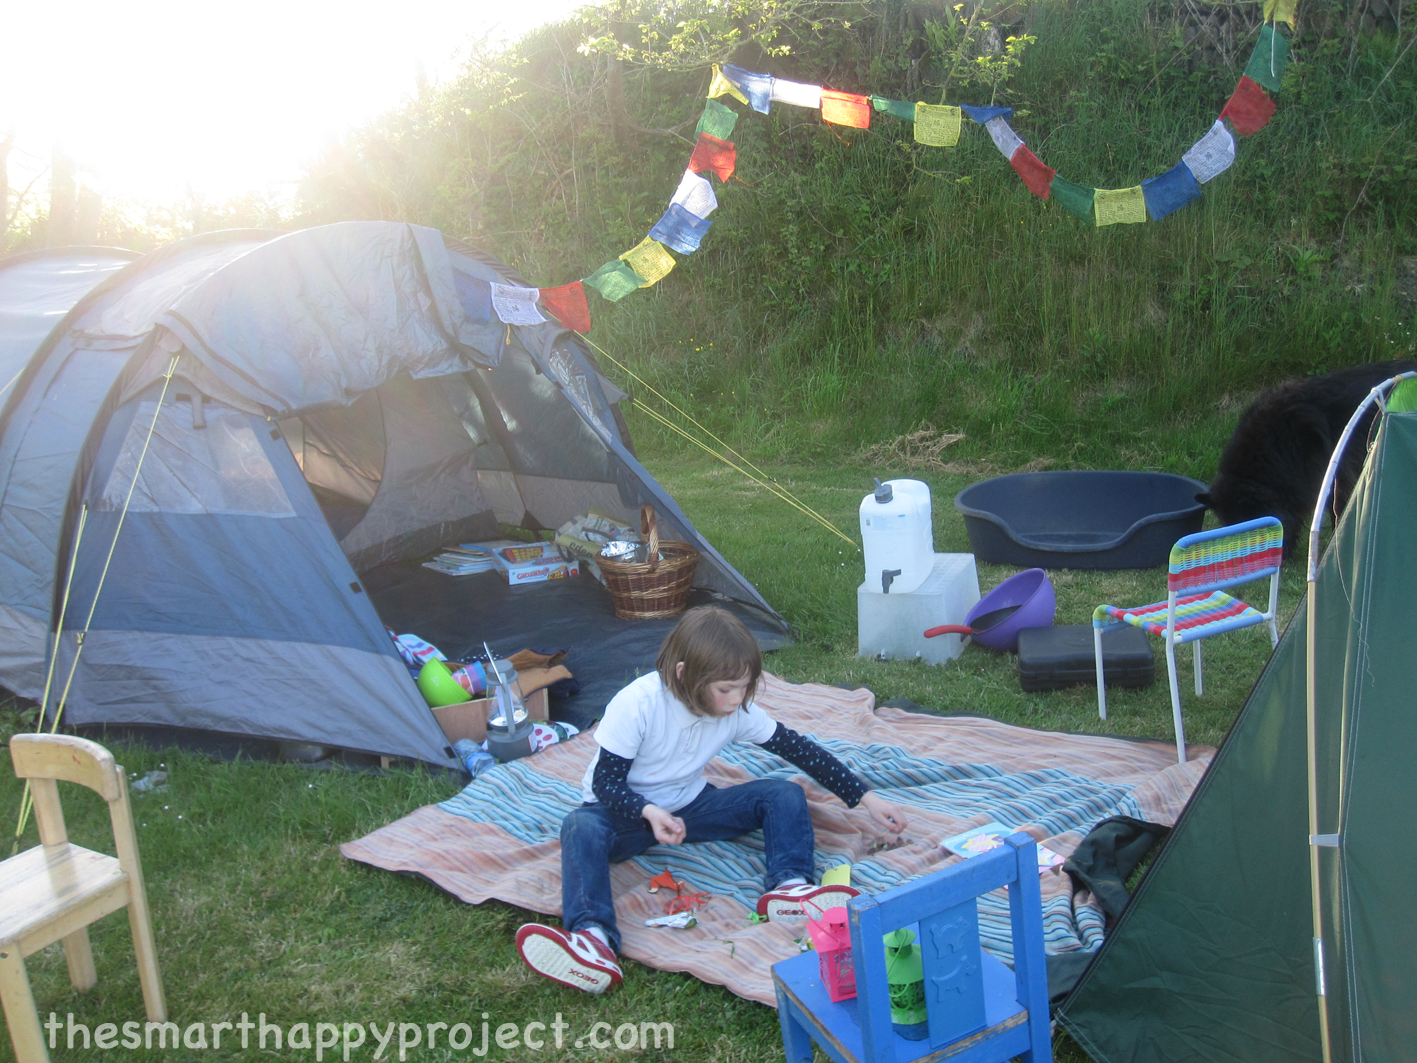 How About Camping in The Garden?